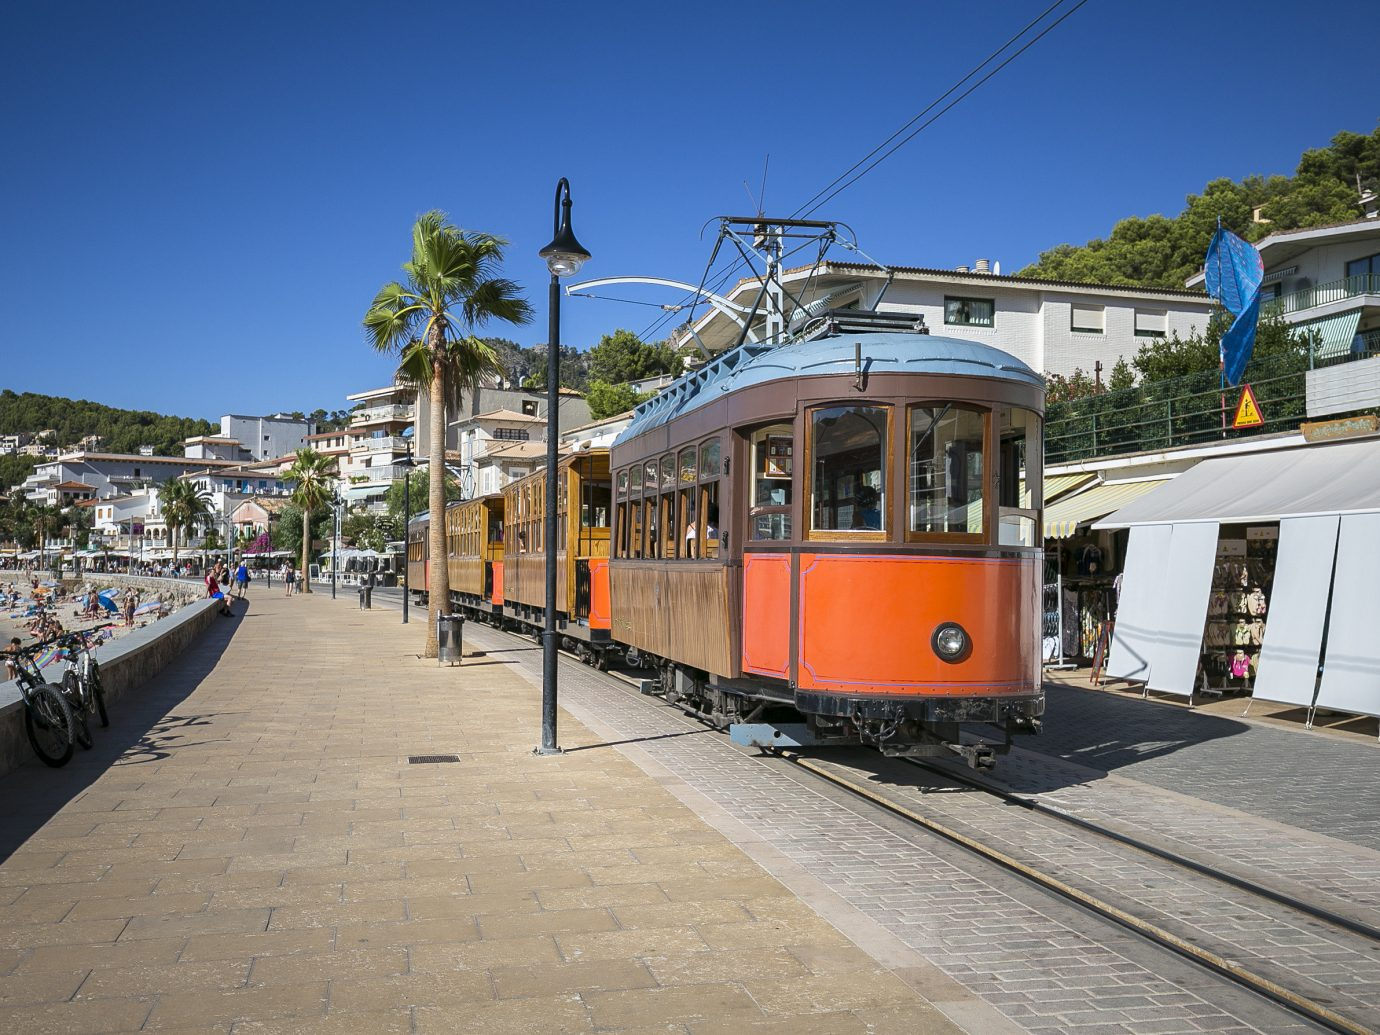 europe Spain Trip Ideas transport tram sky train rail transport cable car tree track rolling stock public transport plant railroad car metropolitan area electricity electrical supply vehicle City train station